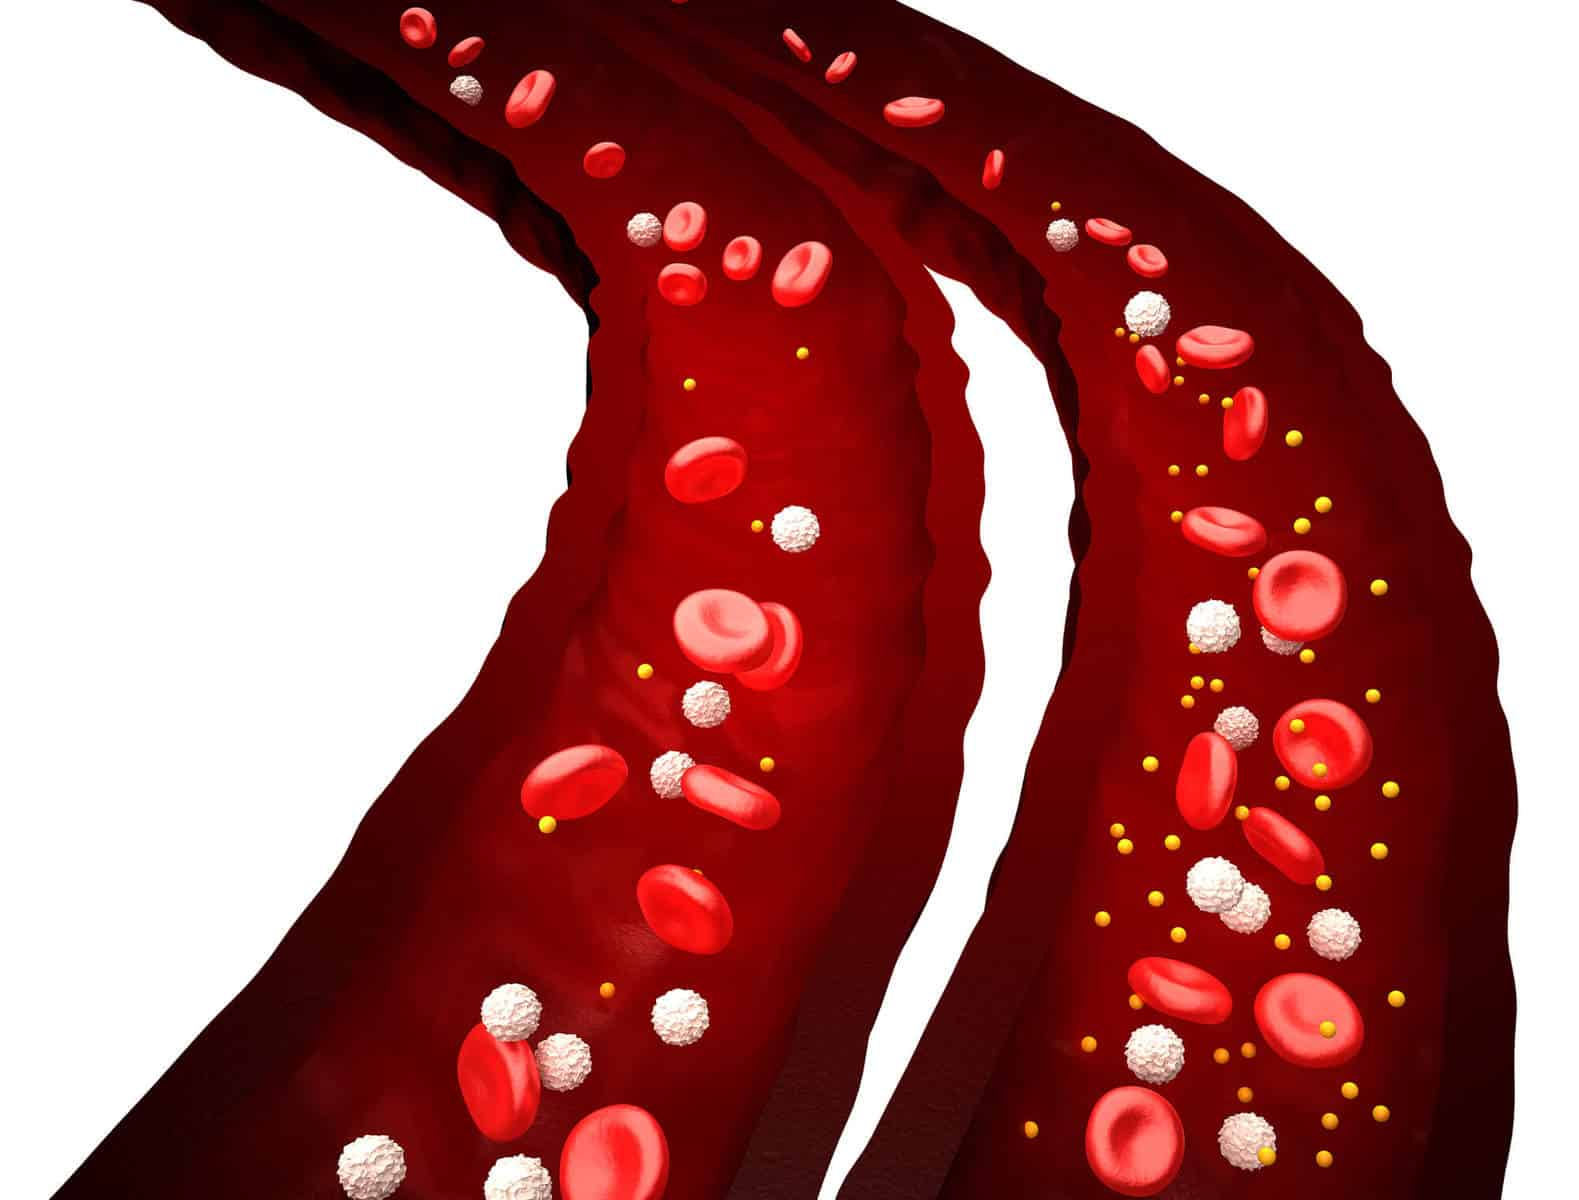 How To Increase Red Blood Cells In Human Body Naturally